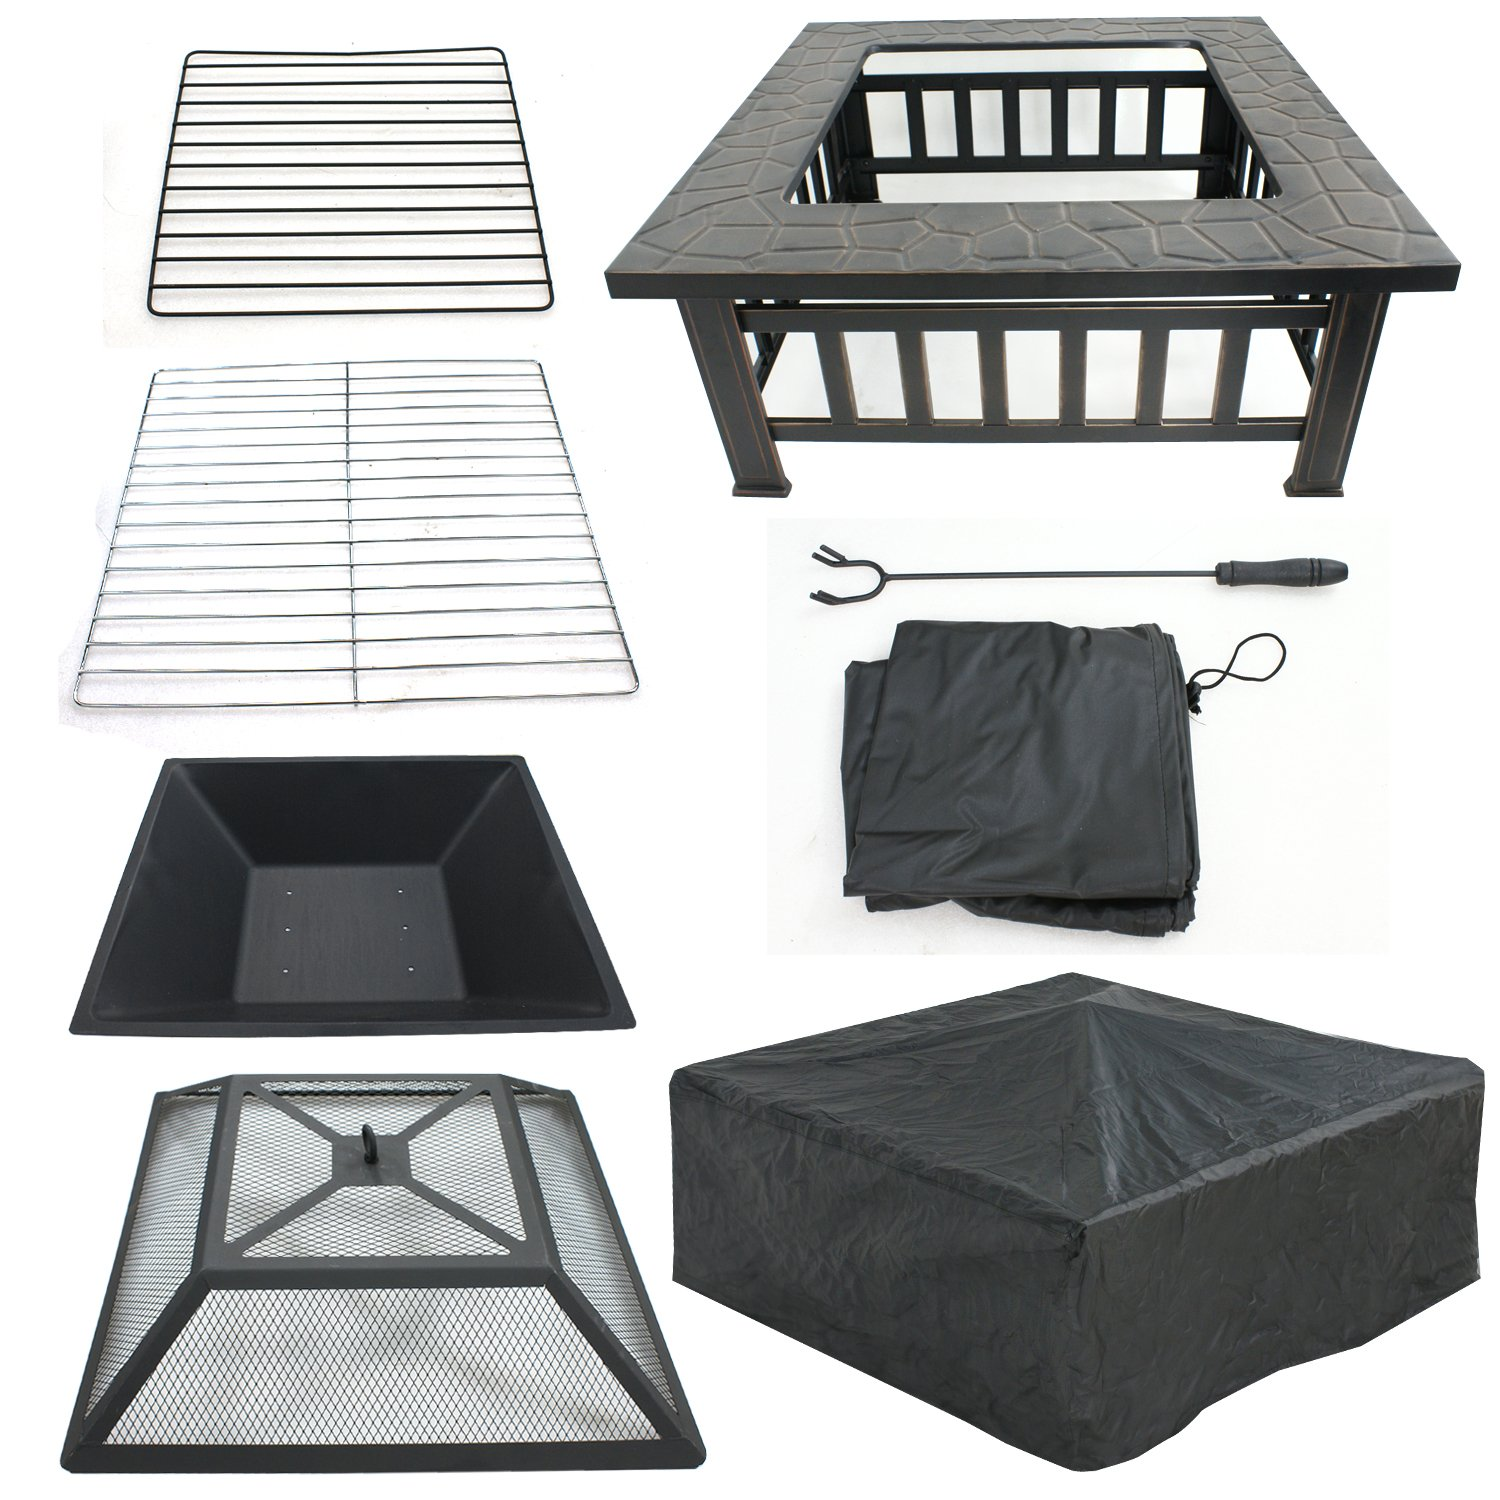 LEMY 32'' Outdoor Fire Pit Square Metal Firepit Backyard Patio Garden Stove Wood Burning BBQ Fire Pit W/Rain Cover, Faux-Stone Finish by LEMY